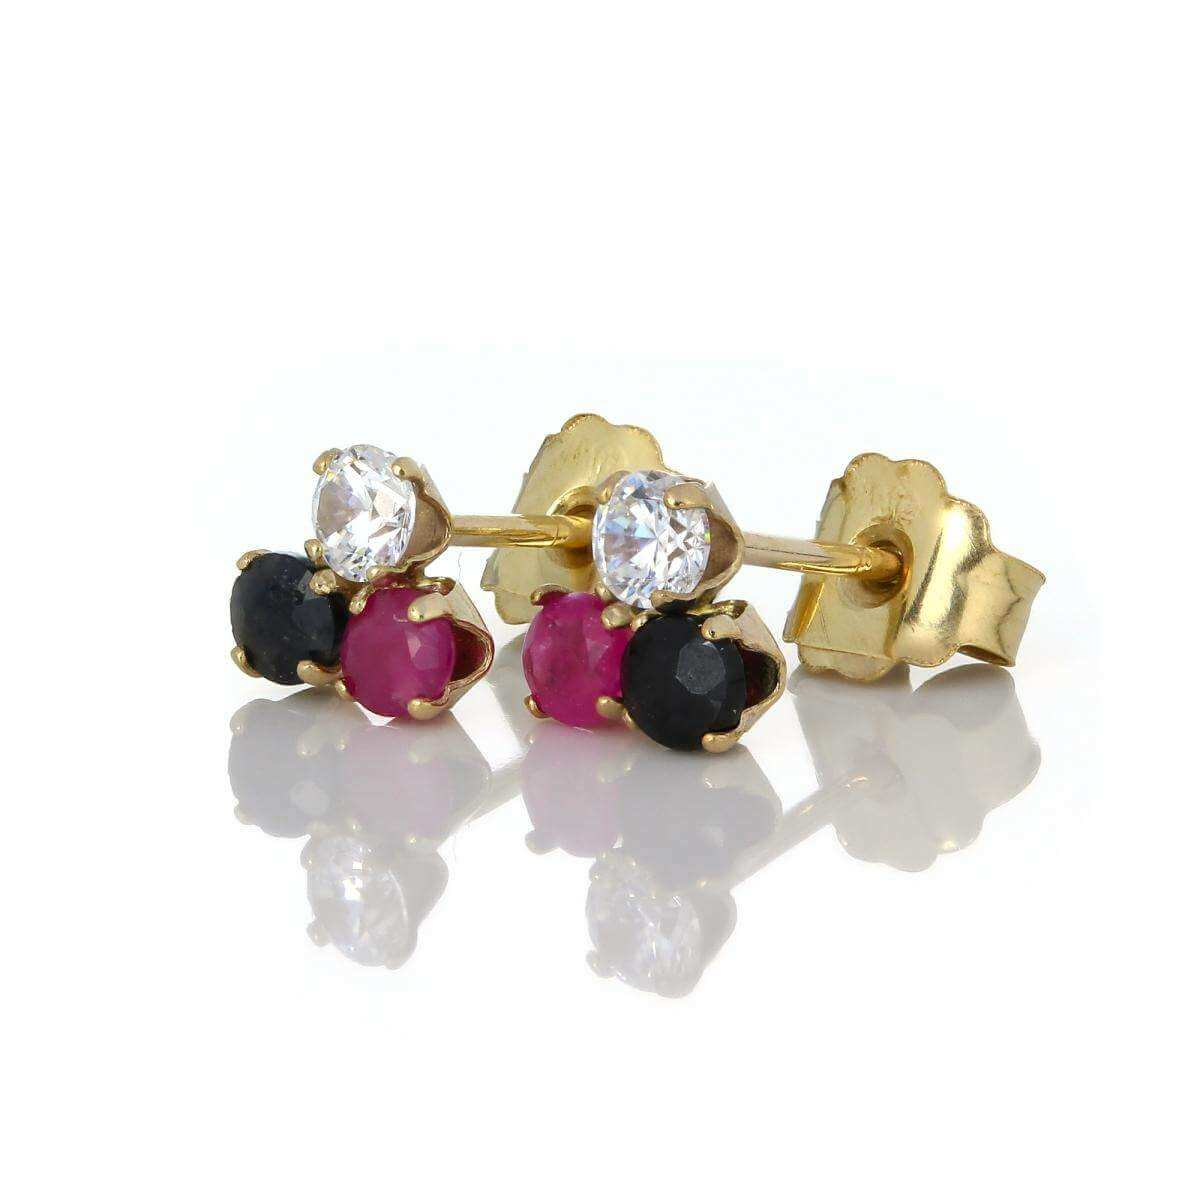 9ct Gold & 2.5mm Sapphire Ruby & Clear CZ Crystal Stud Earrings